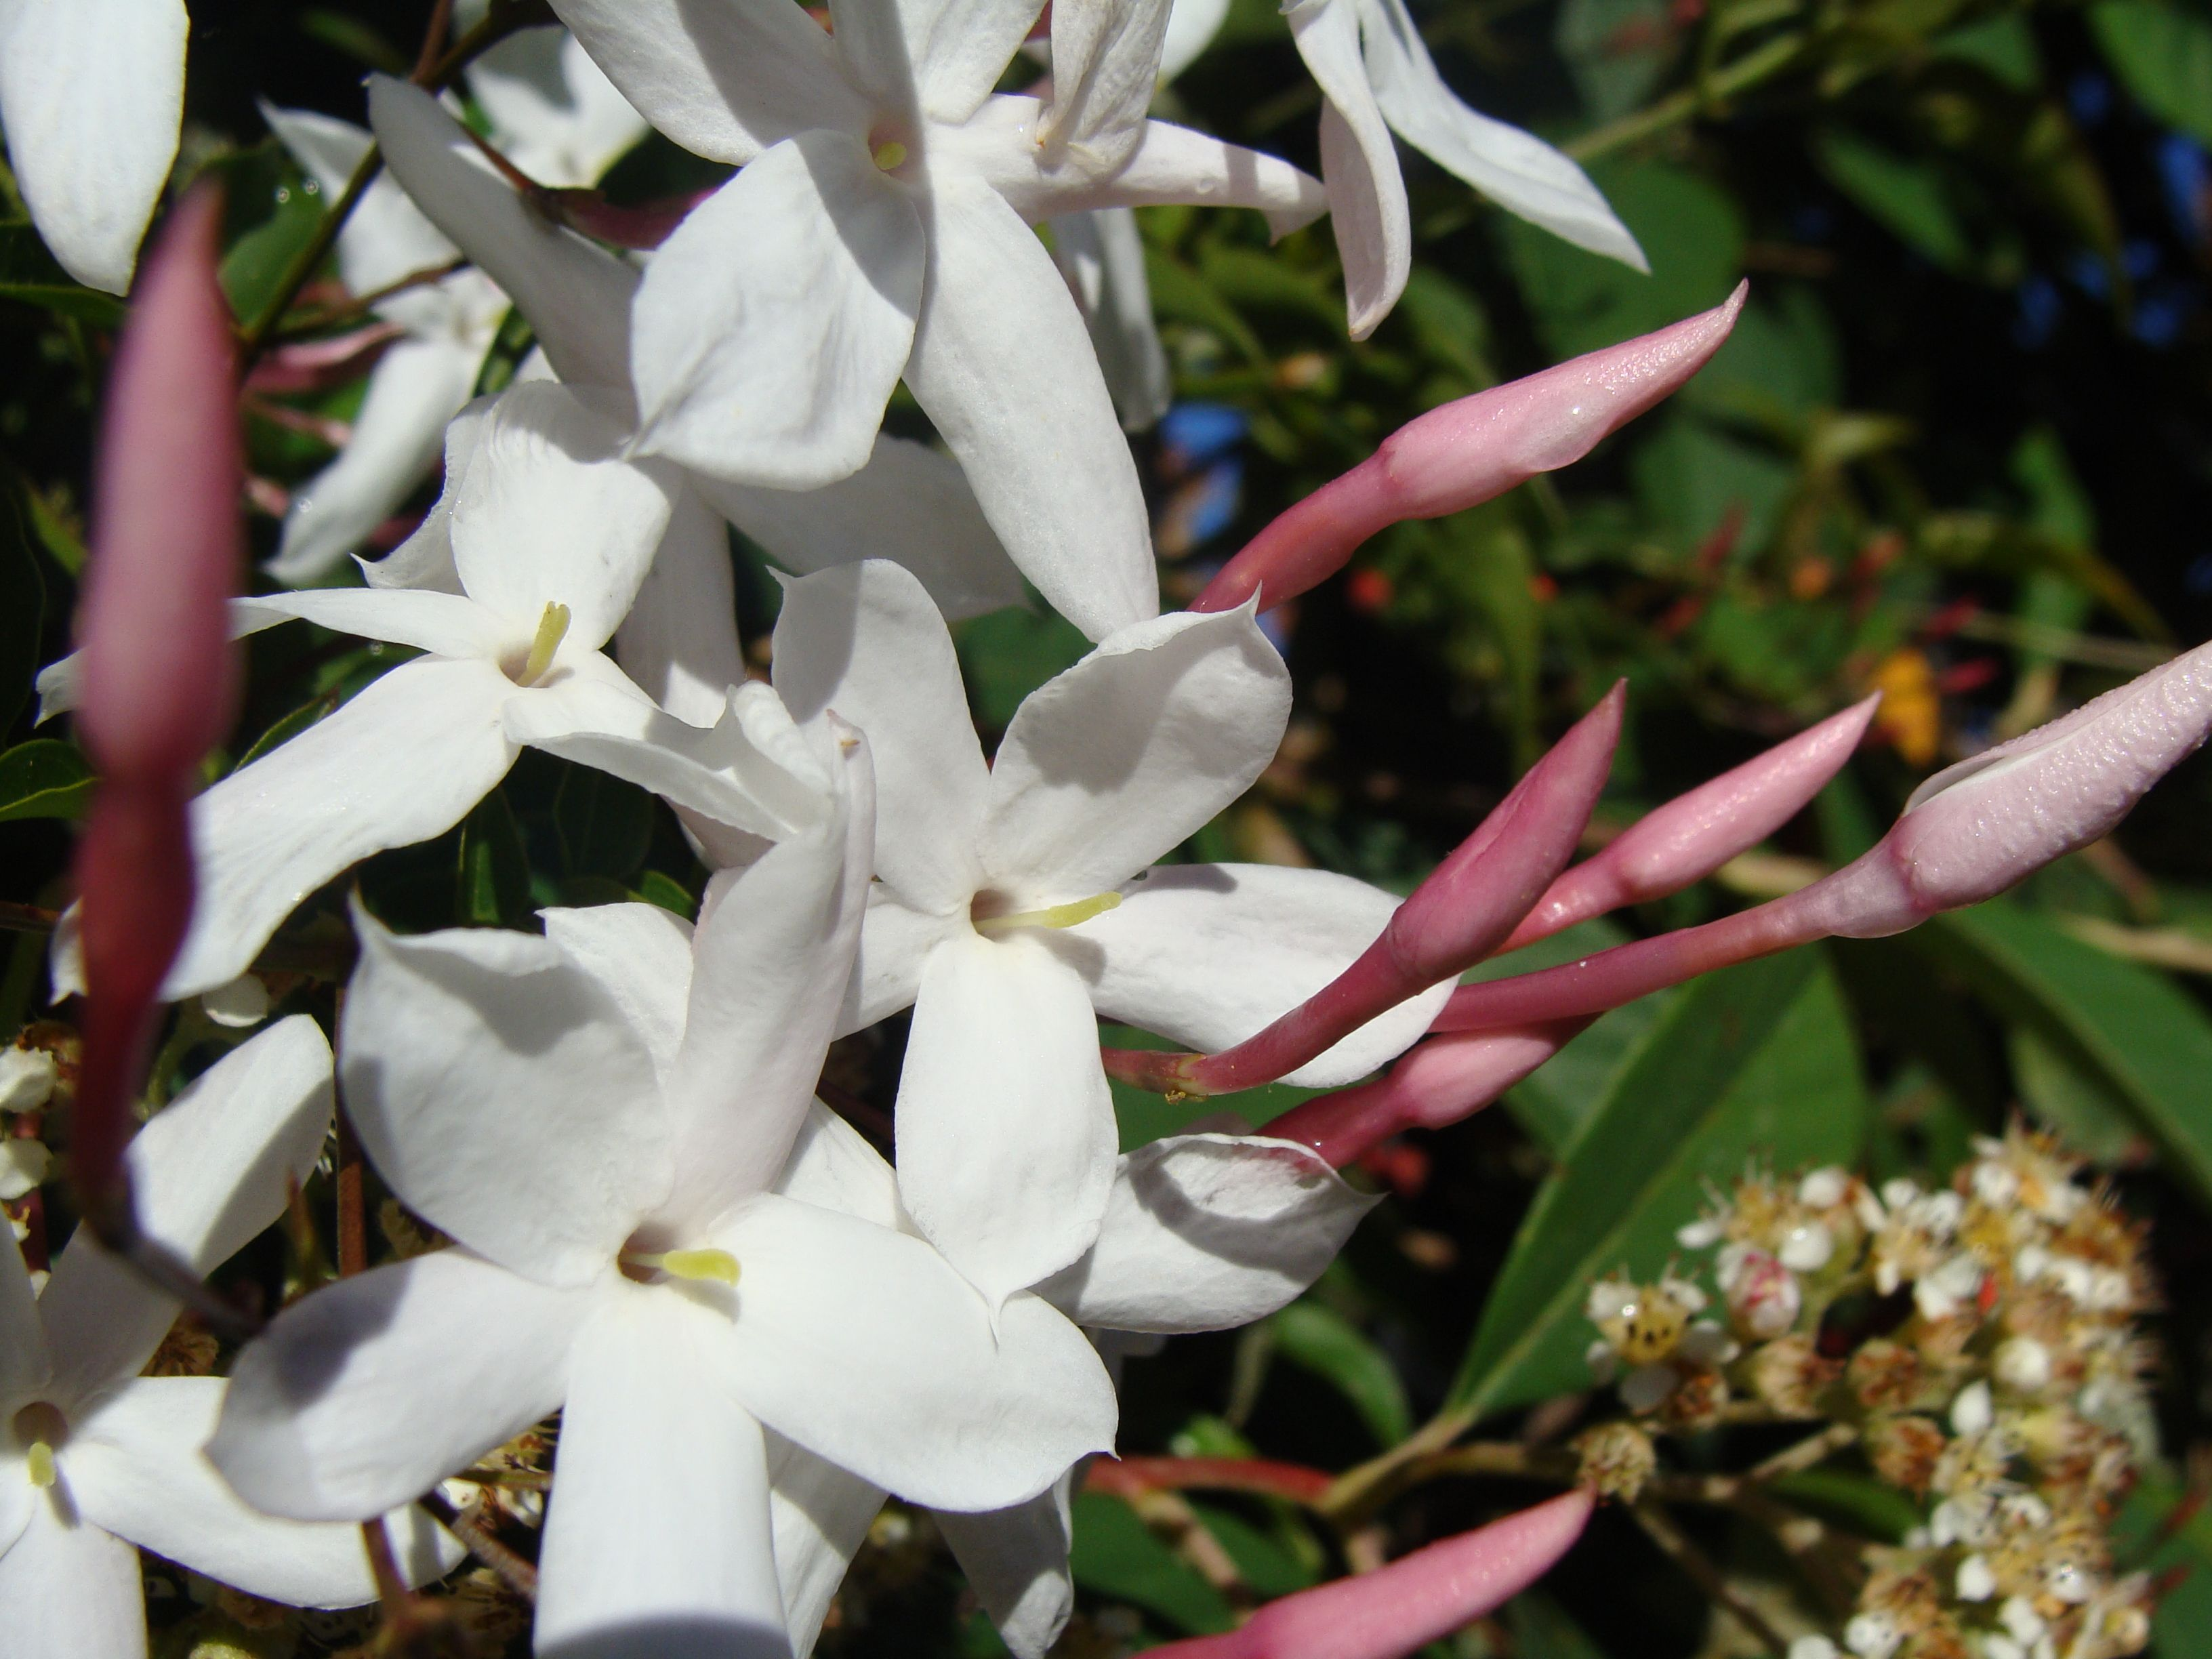 Jasminum officinale, known as the common jasmine or simply